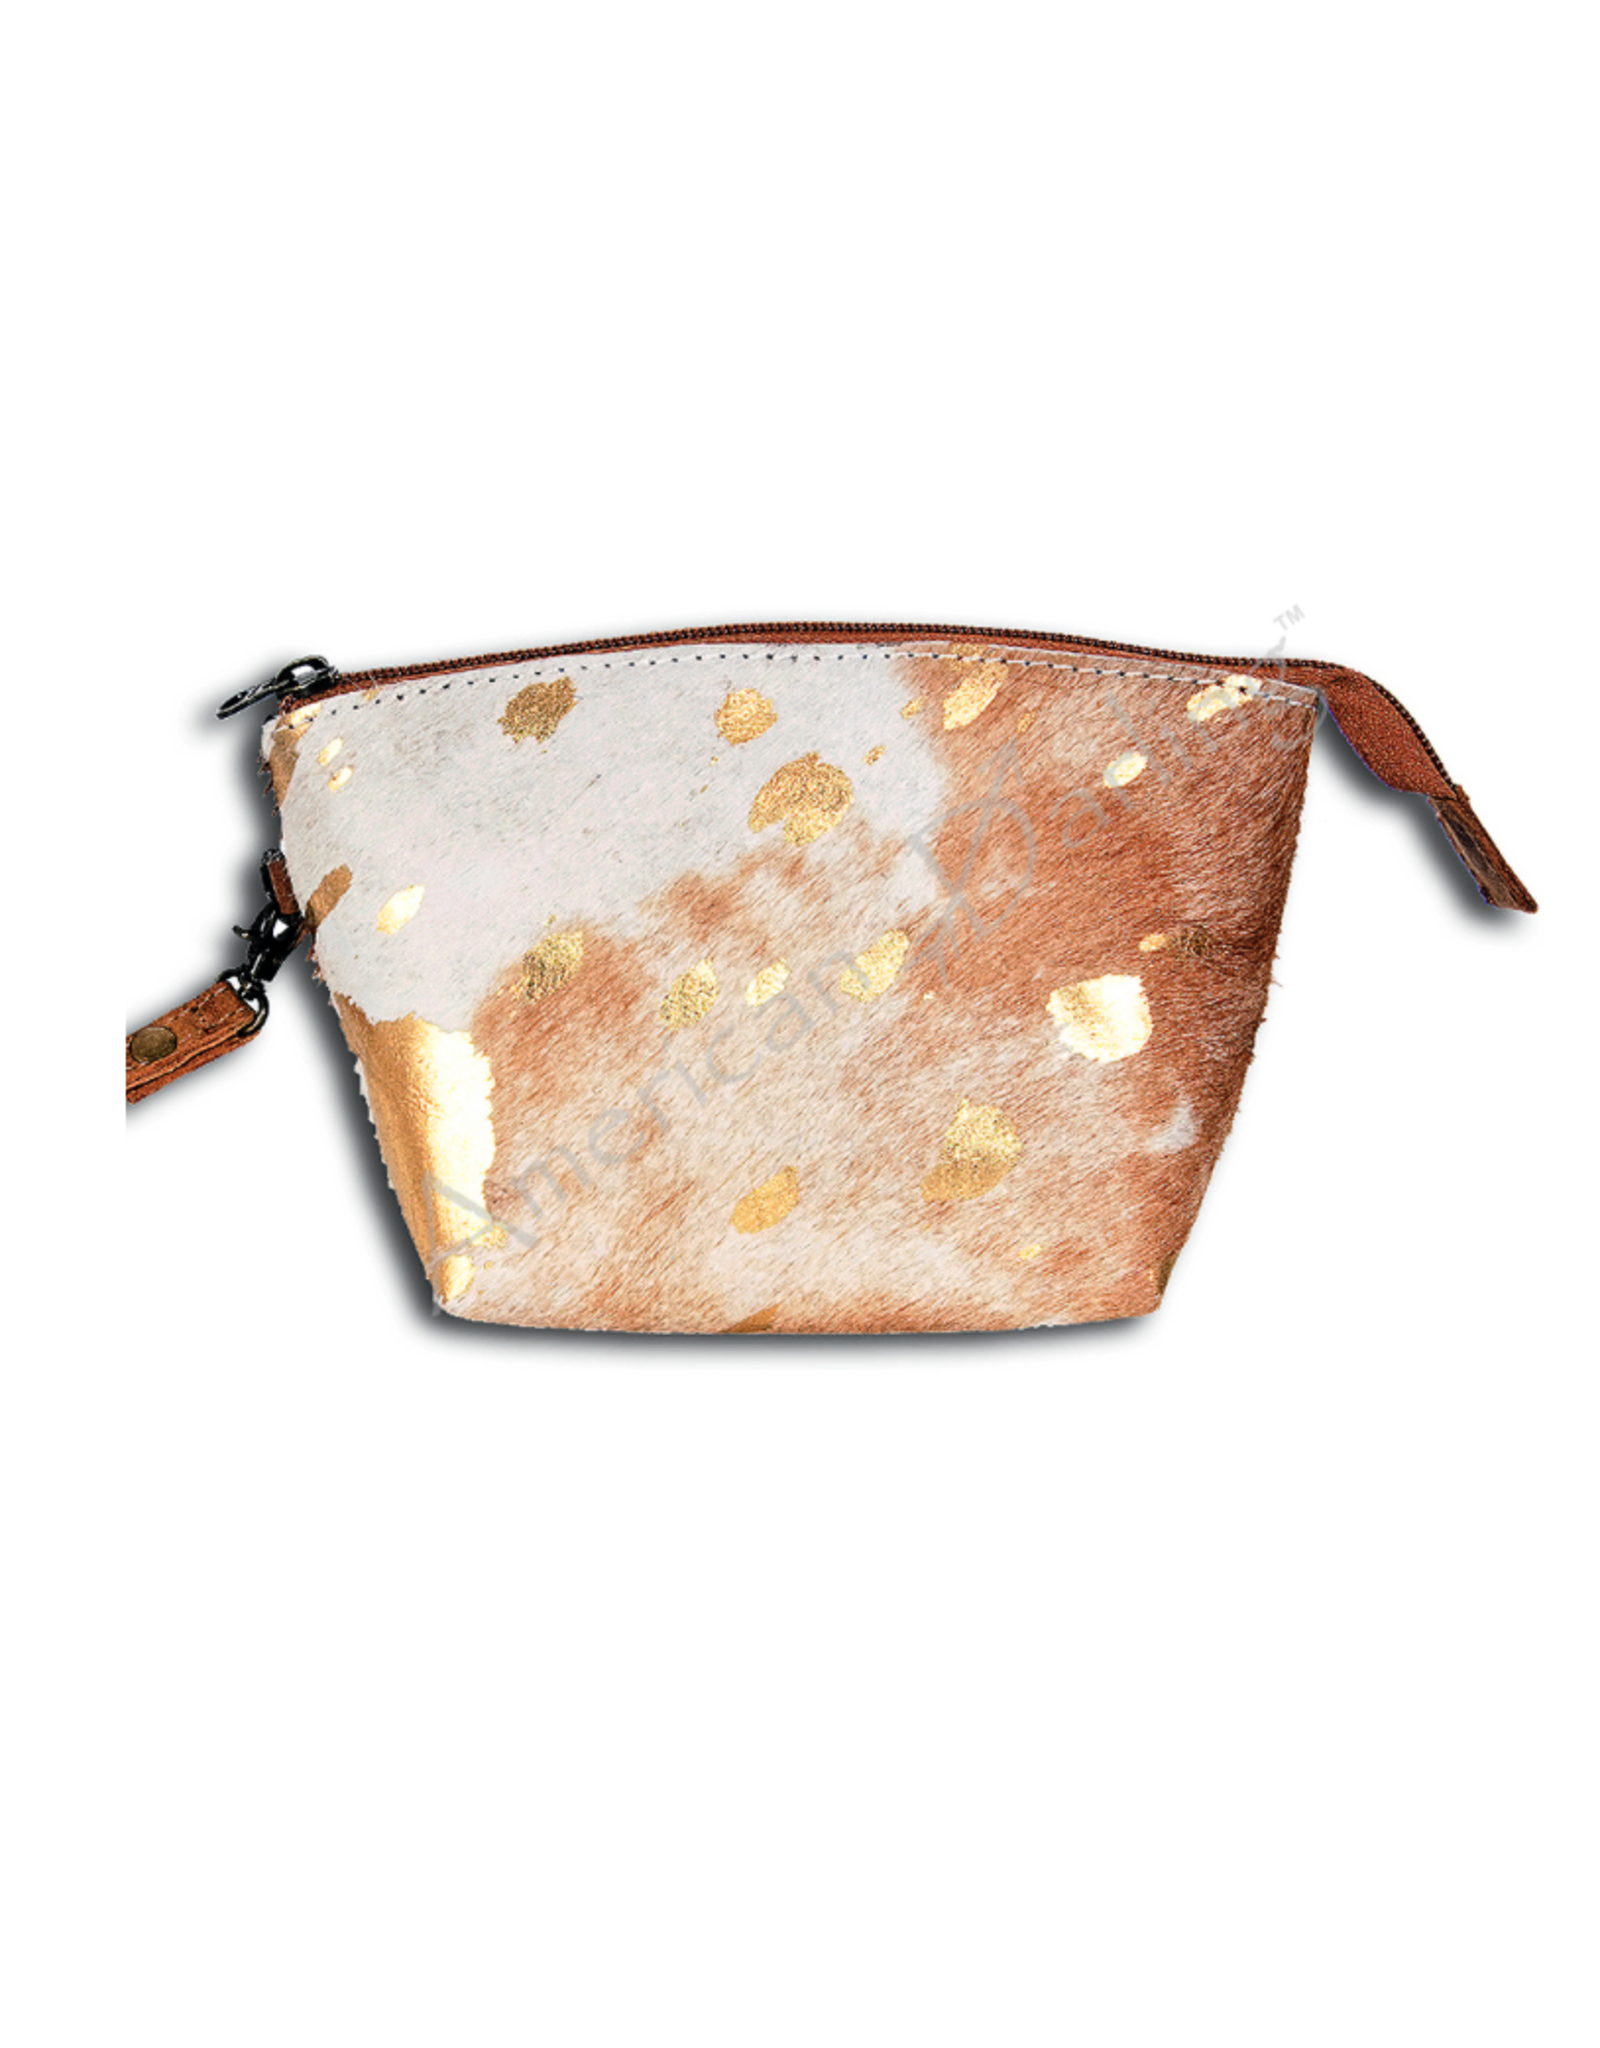 American Darling Tan & Gold Pouch